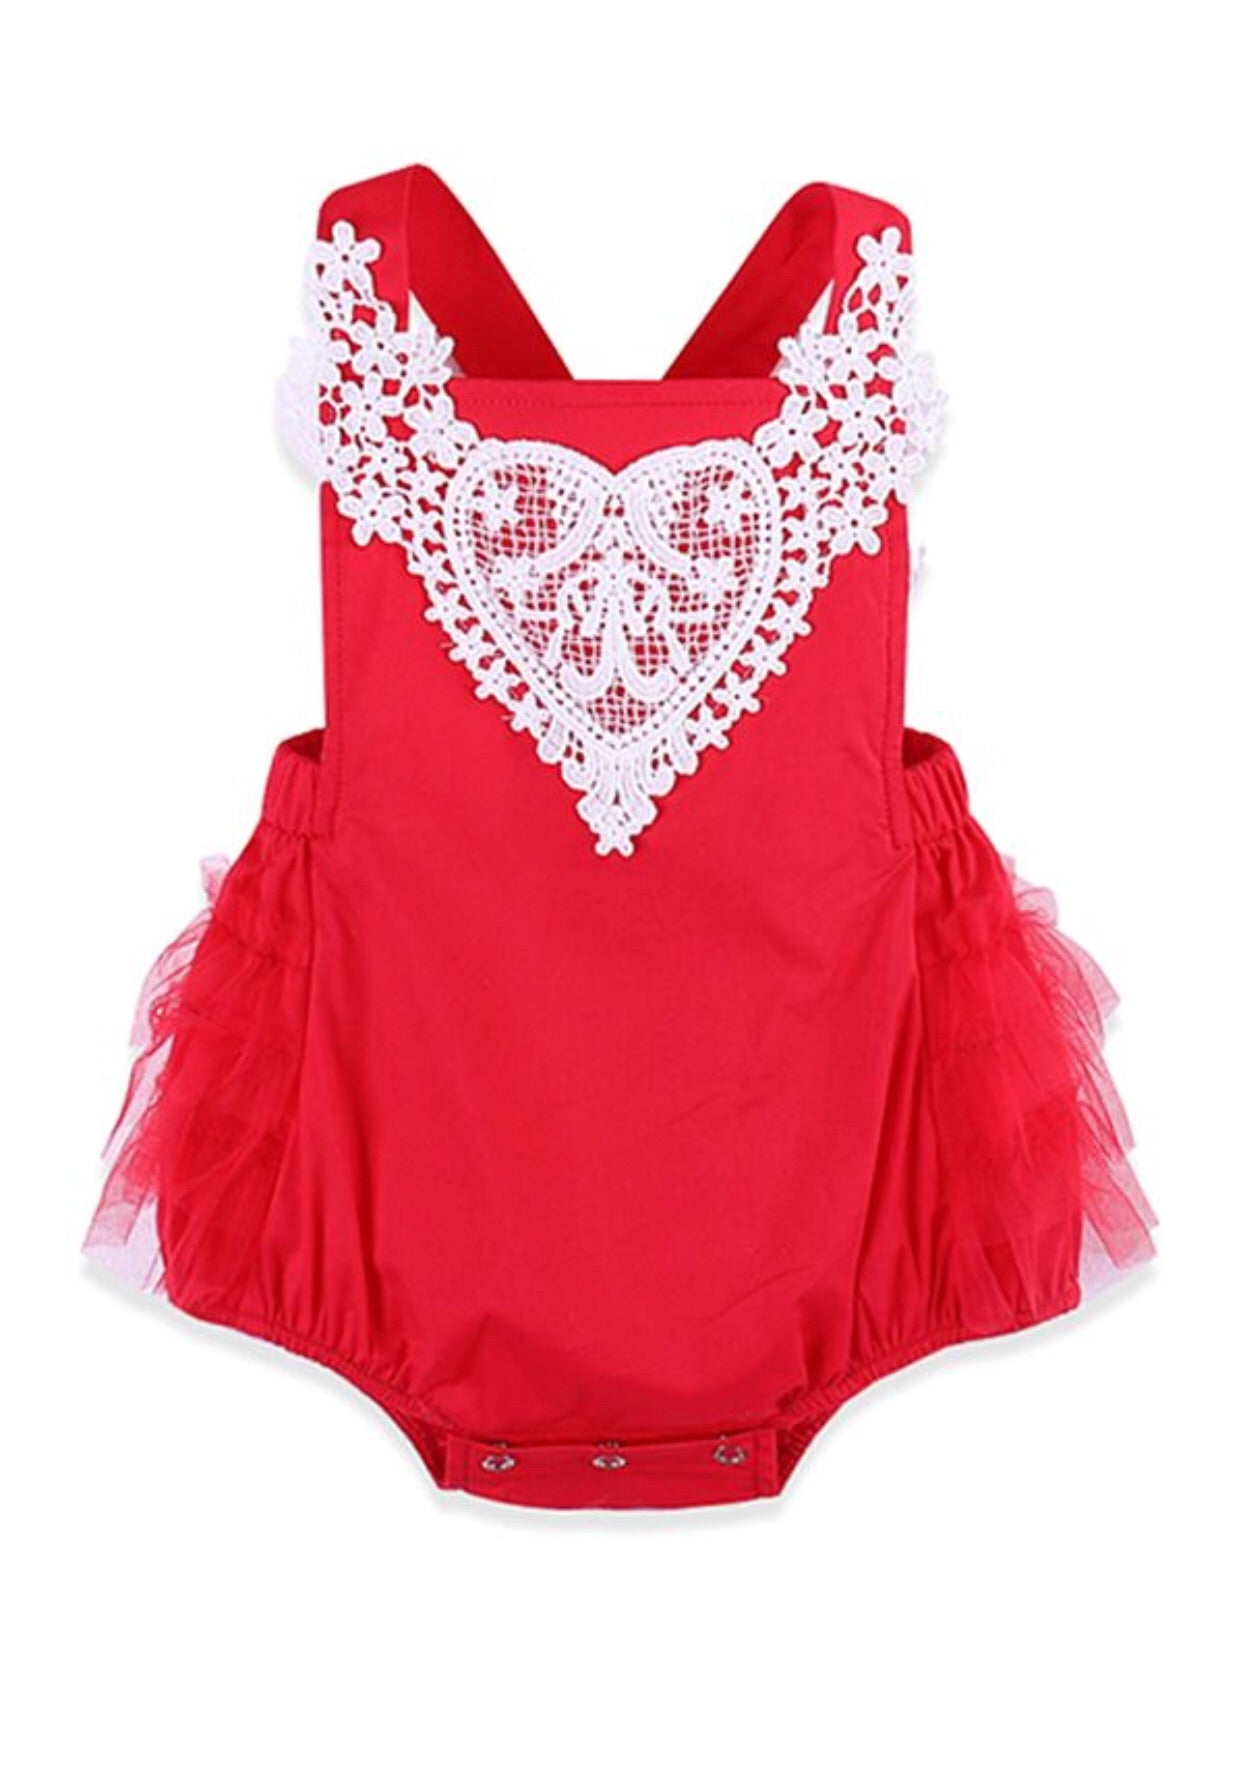 Isabella- Red Lace Romper